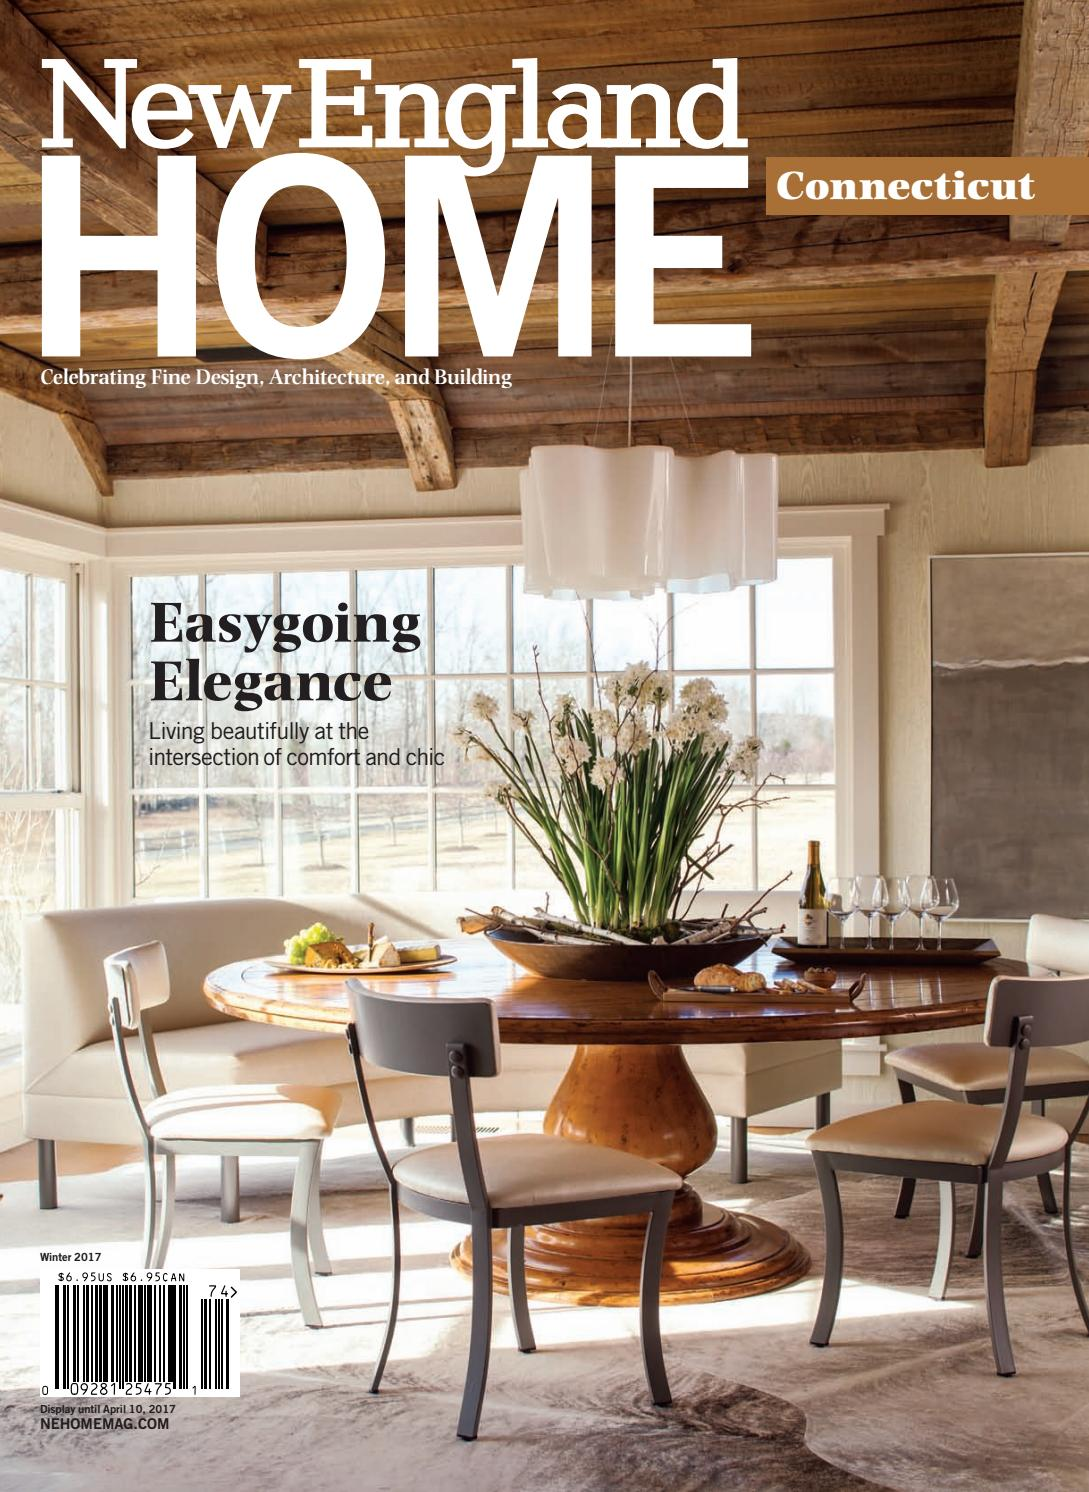 New england home connecticut winter 2017 by new england home magazine llc issuu